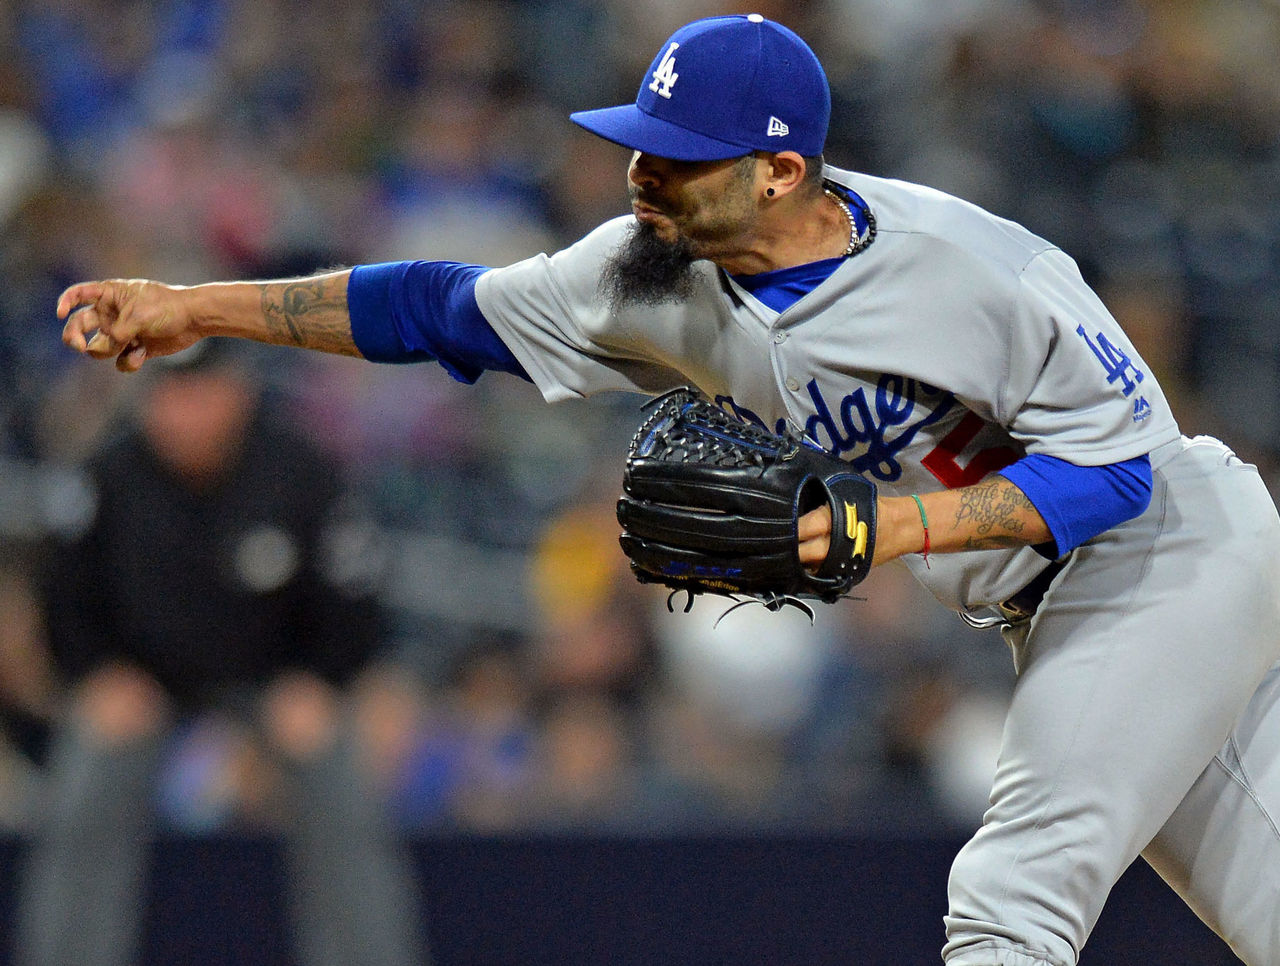 Cropped 2017 07 01t054828z 268043798 nocid rtrmadp 3 mlb los angeles dodgers at san diego padres